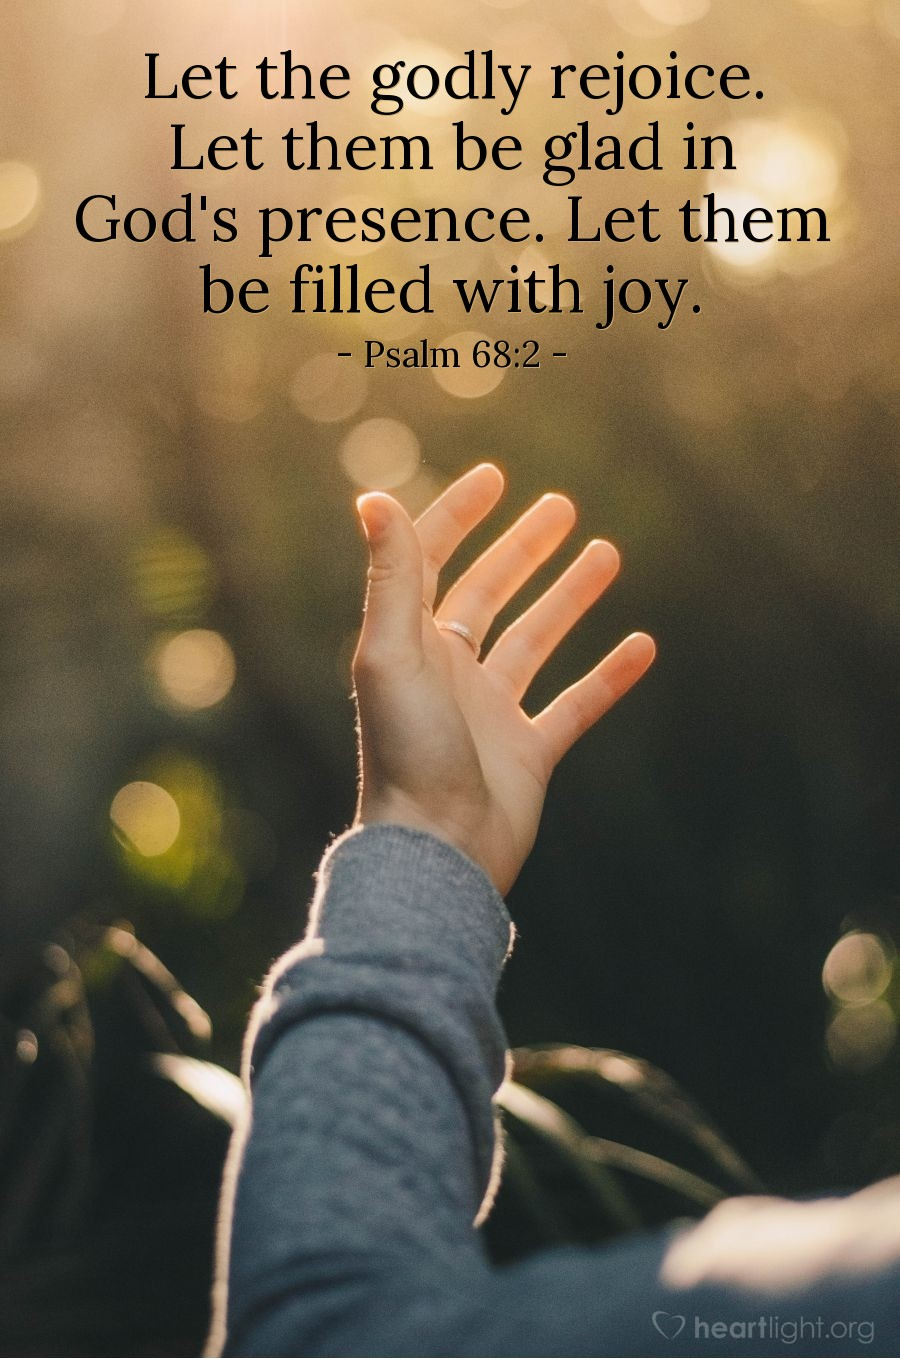 Illustration of Psalm 68:2 — Let the godly rejoice. Let them be glad in God's presence. Let them be filled with joy.